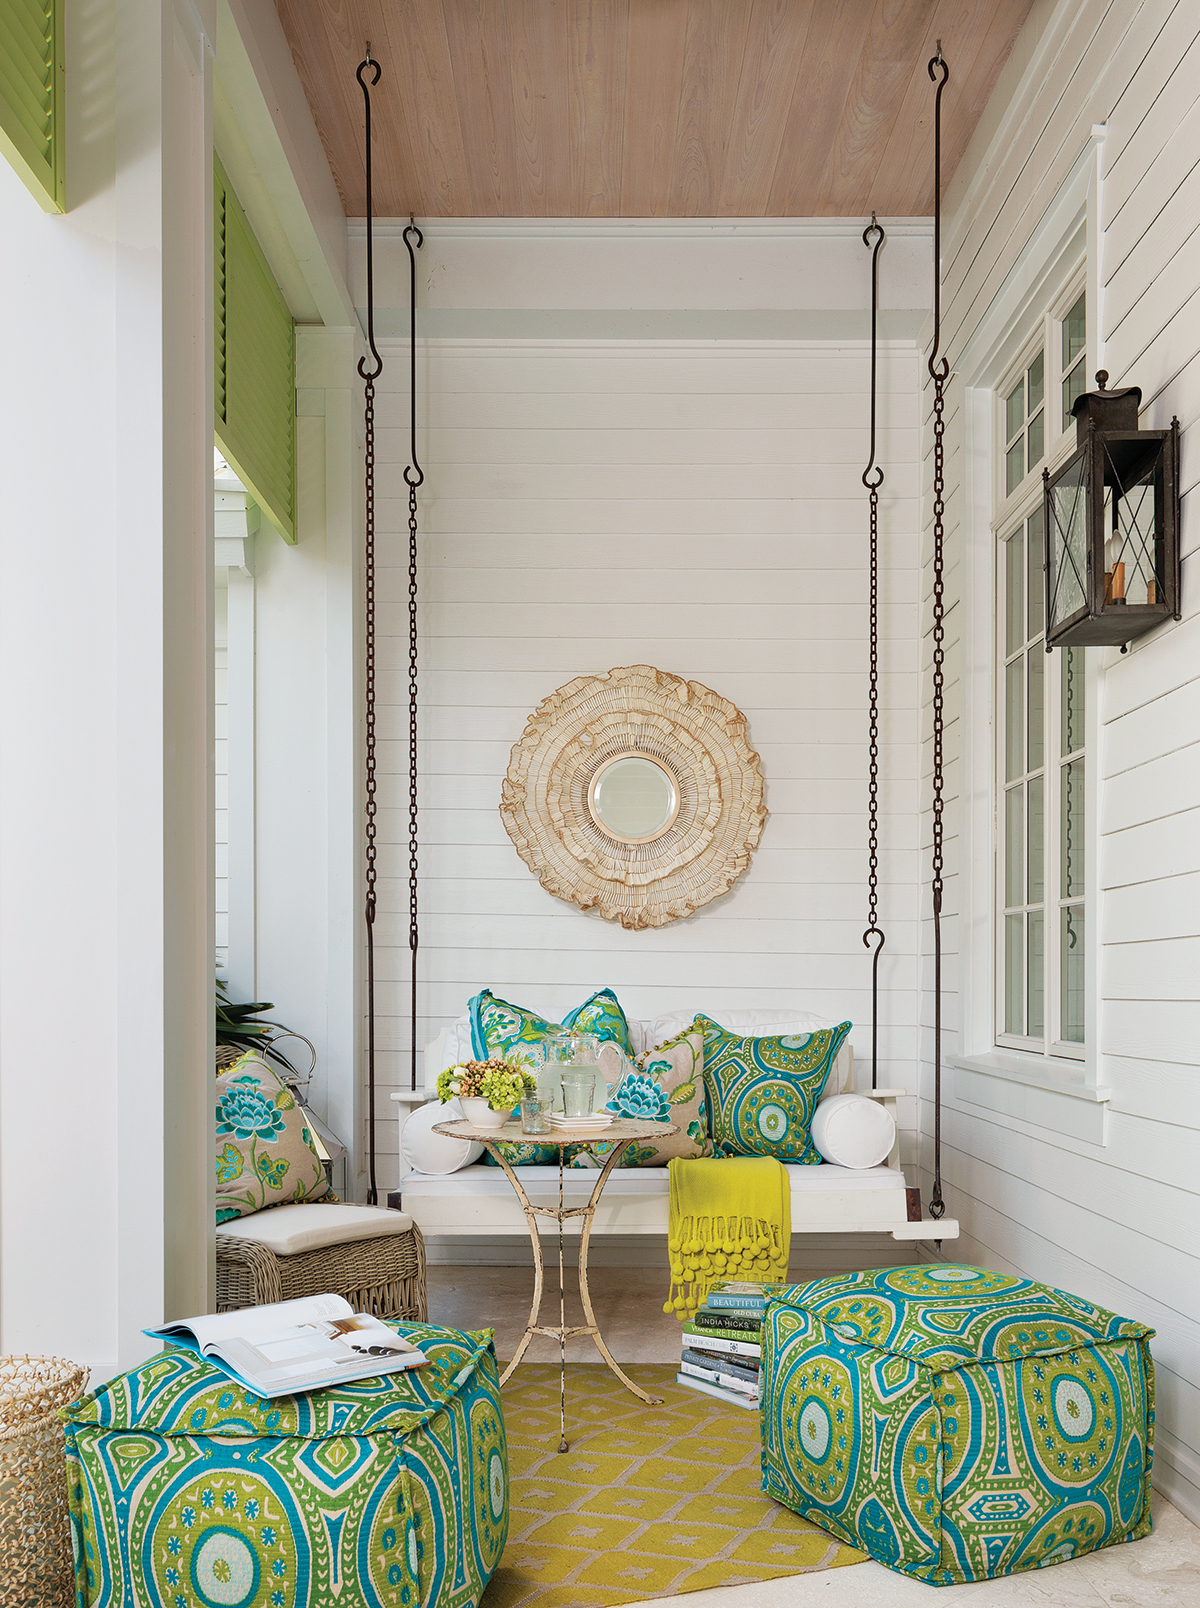 Bright patterned fabrics in ottomans and accent pillows continue outdoors on the cozy front porch. A rattan mirror from Palecek and a vintage bistro table convey an earthy vibe, while ottomans clad in a chartreuse-and-turquoise print provide extra seating.